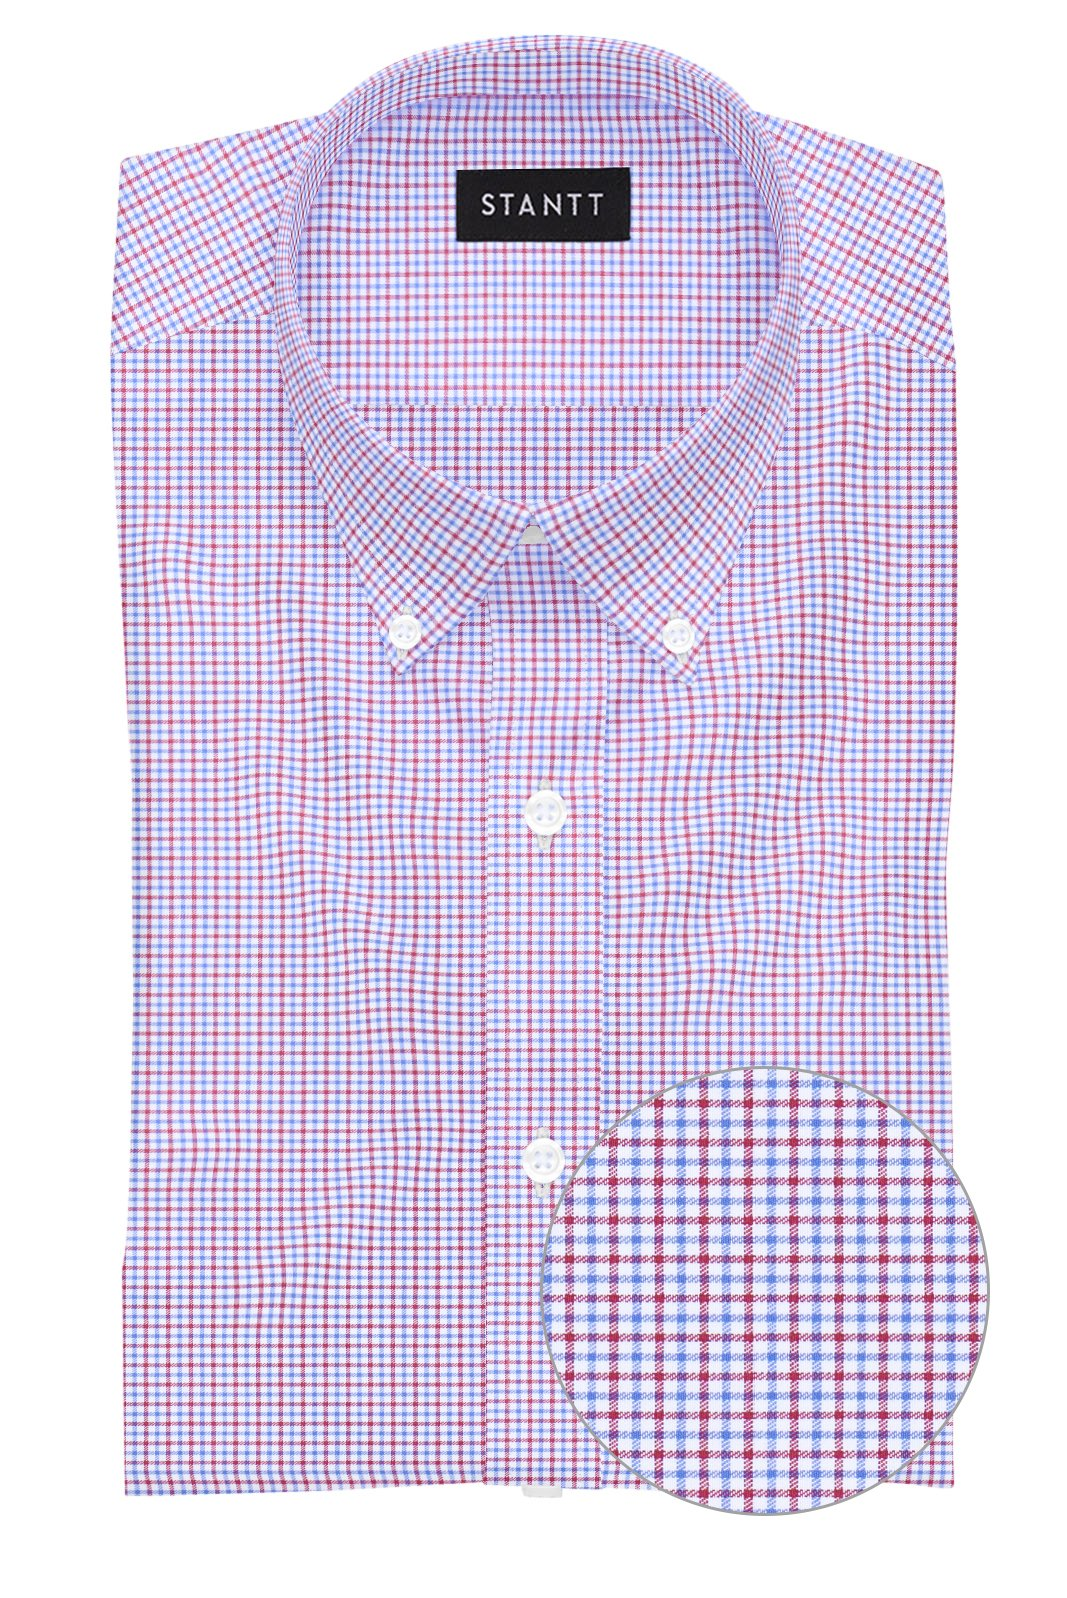 Red and Blue Mini Tattersall: Button-Down Collar, Barrel Cuff